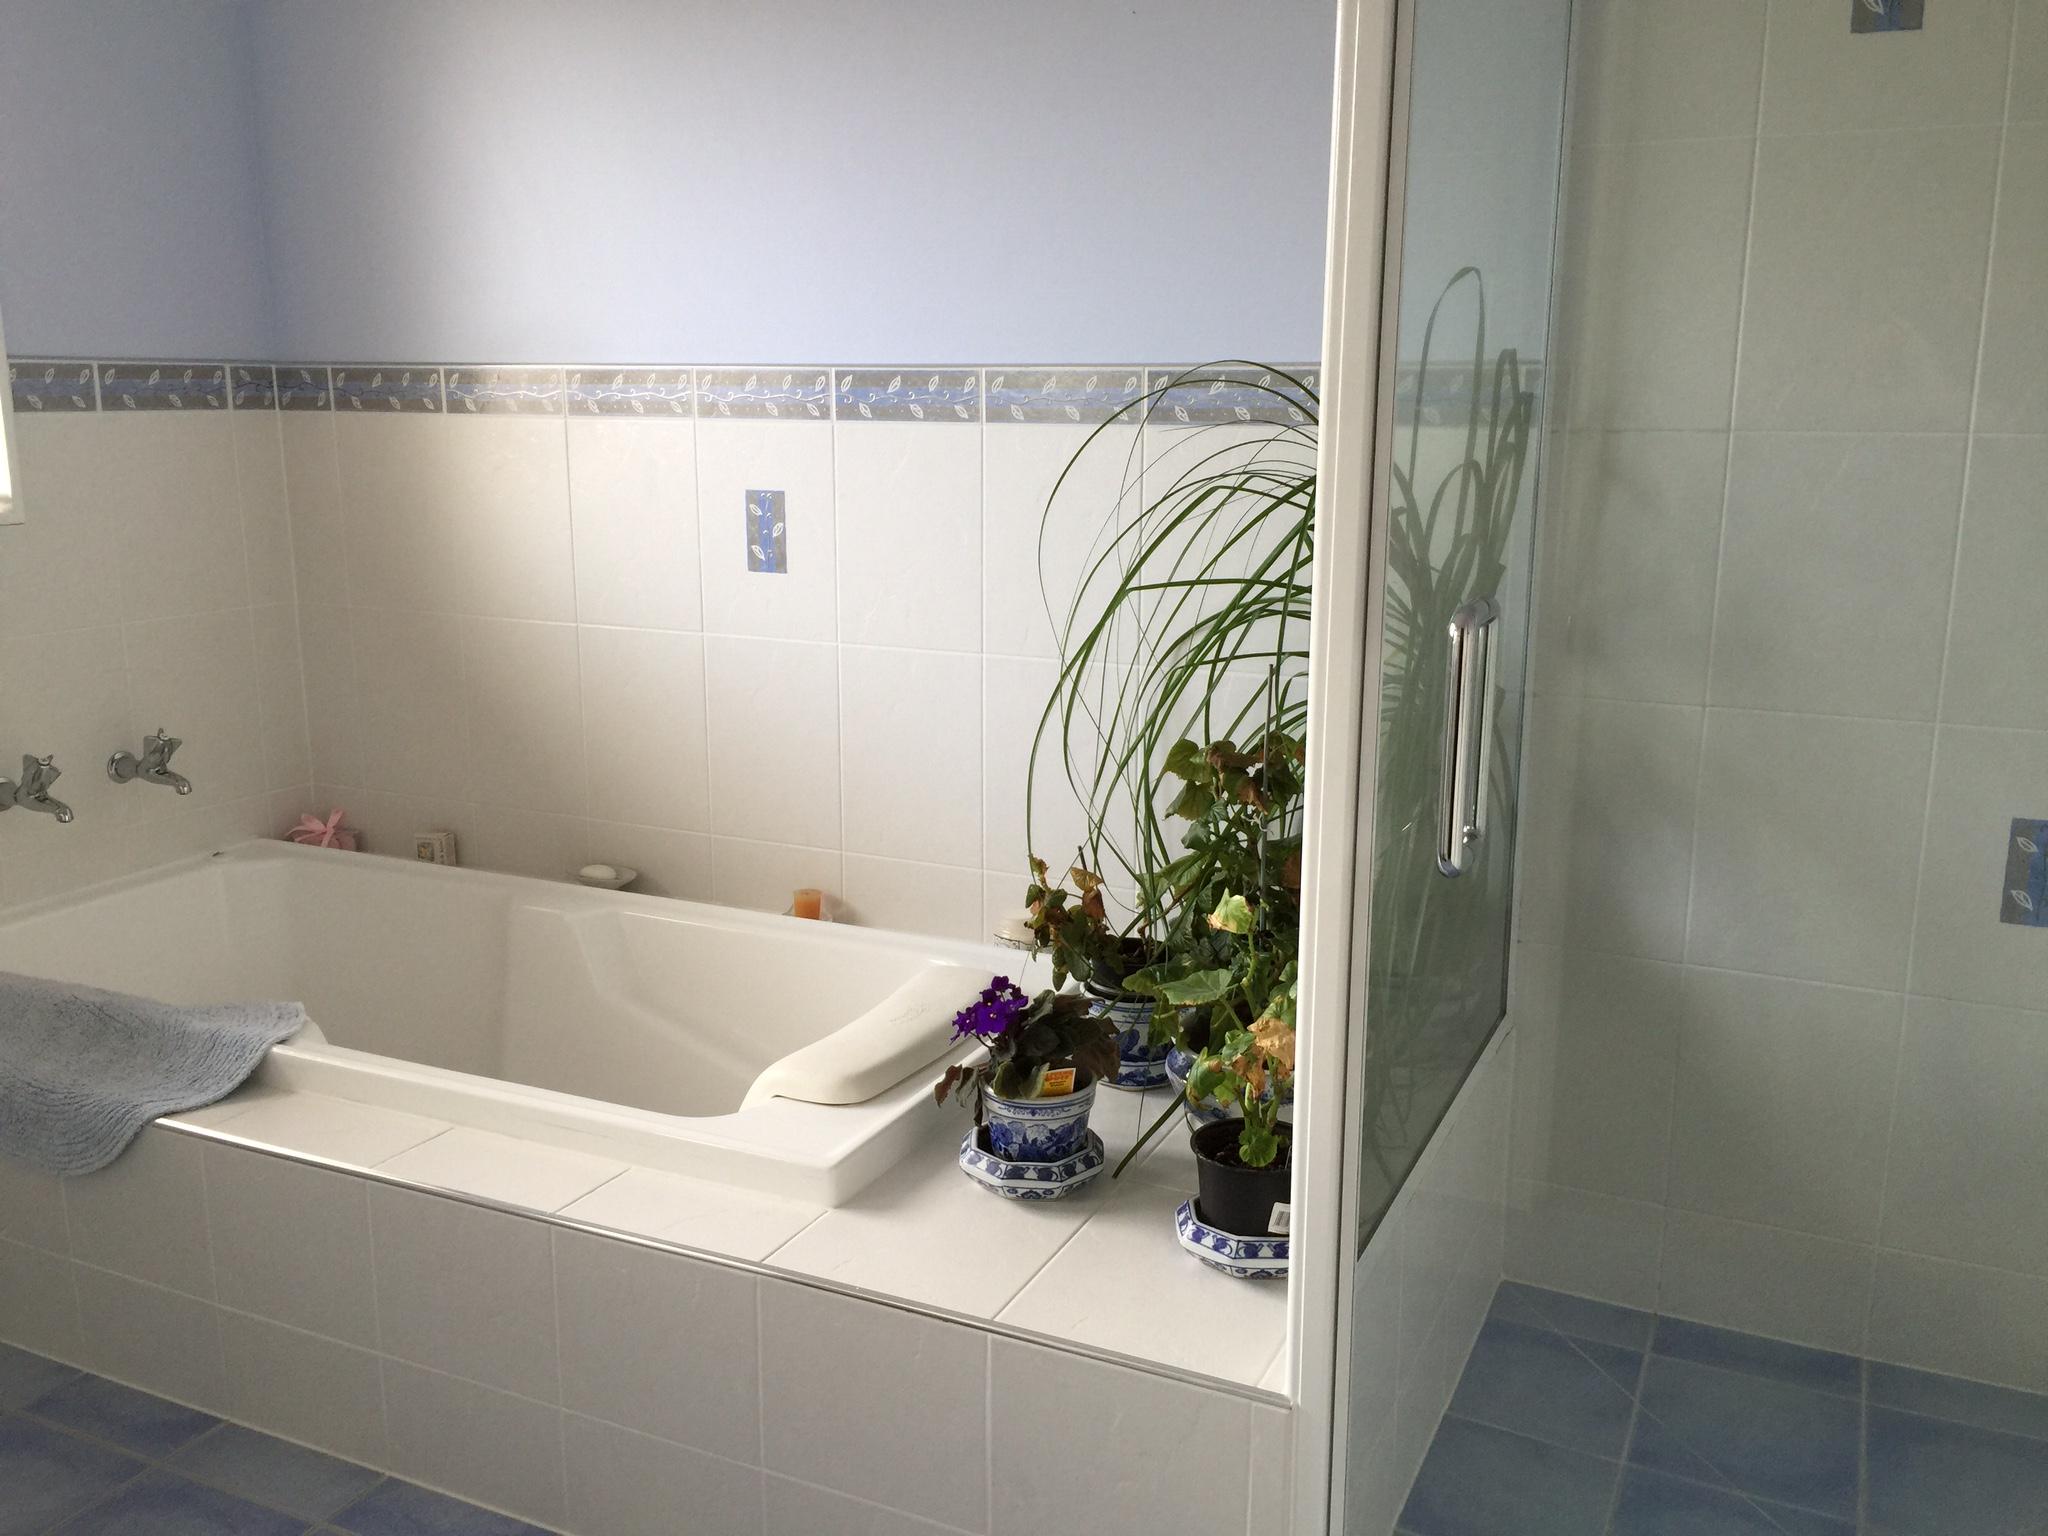 Guest's Shared Bathroom